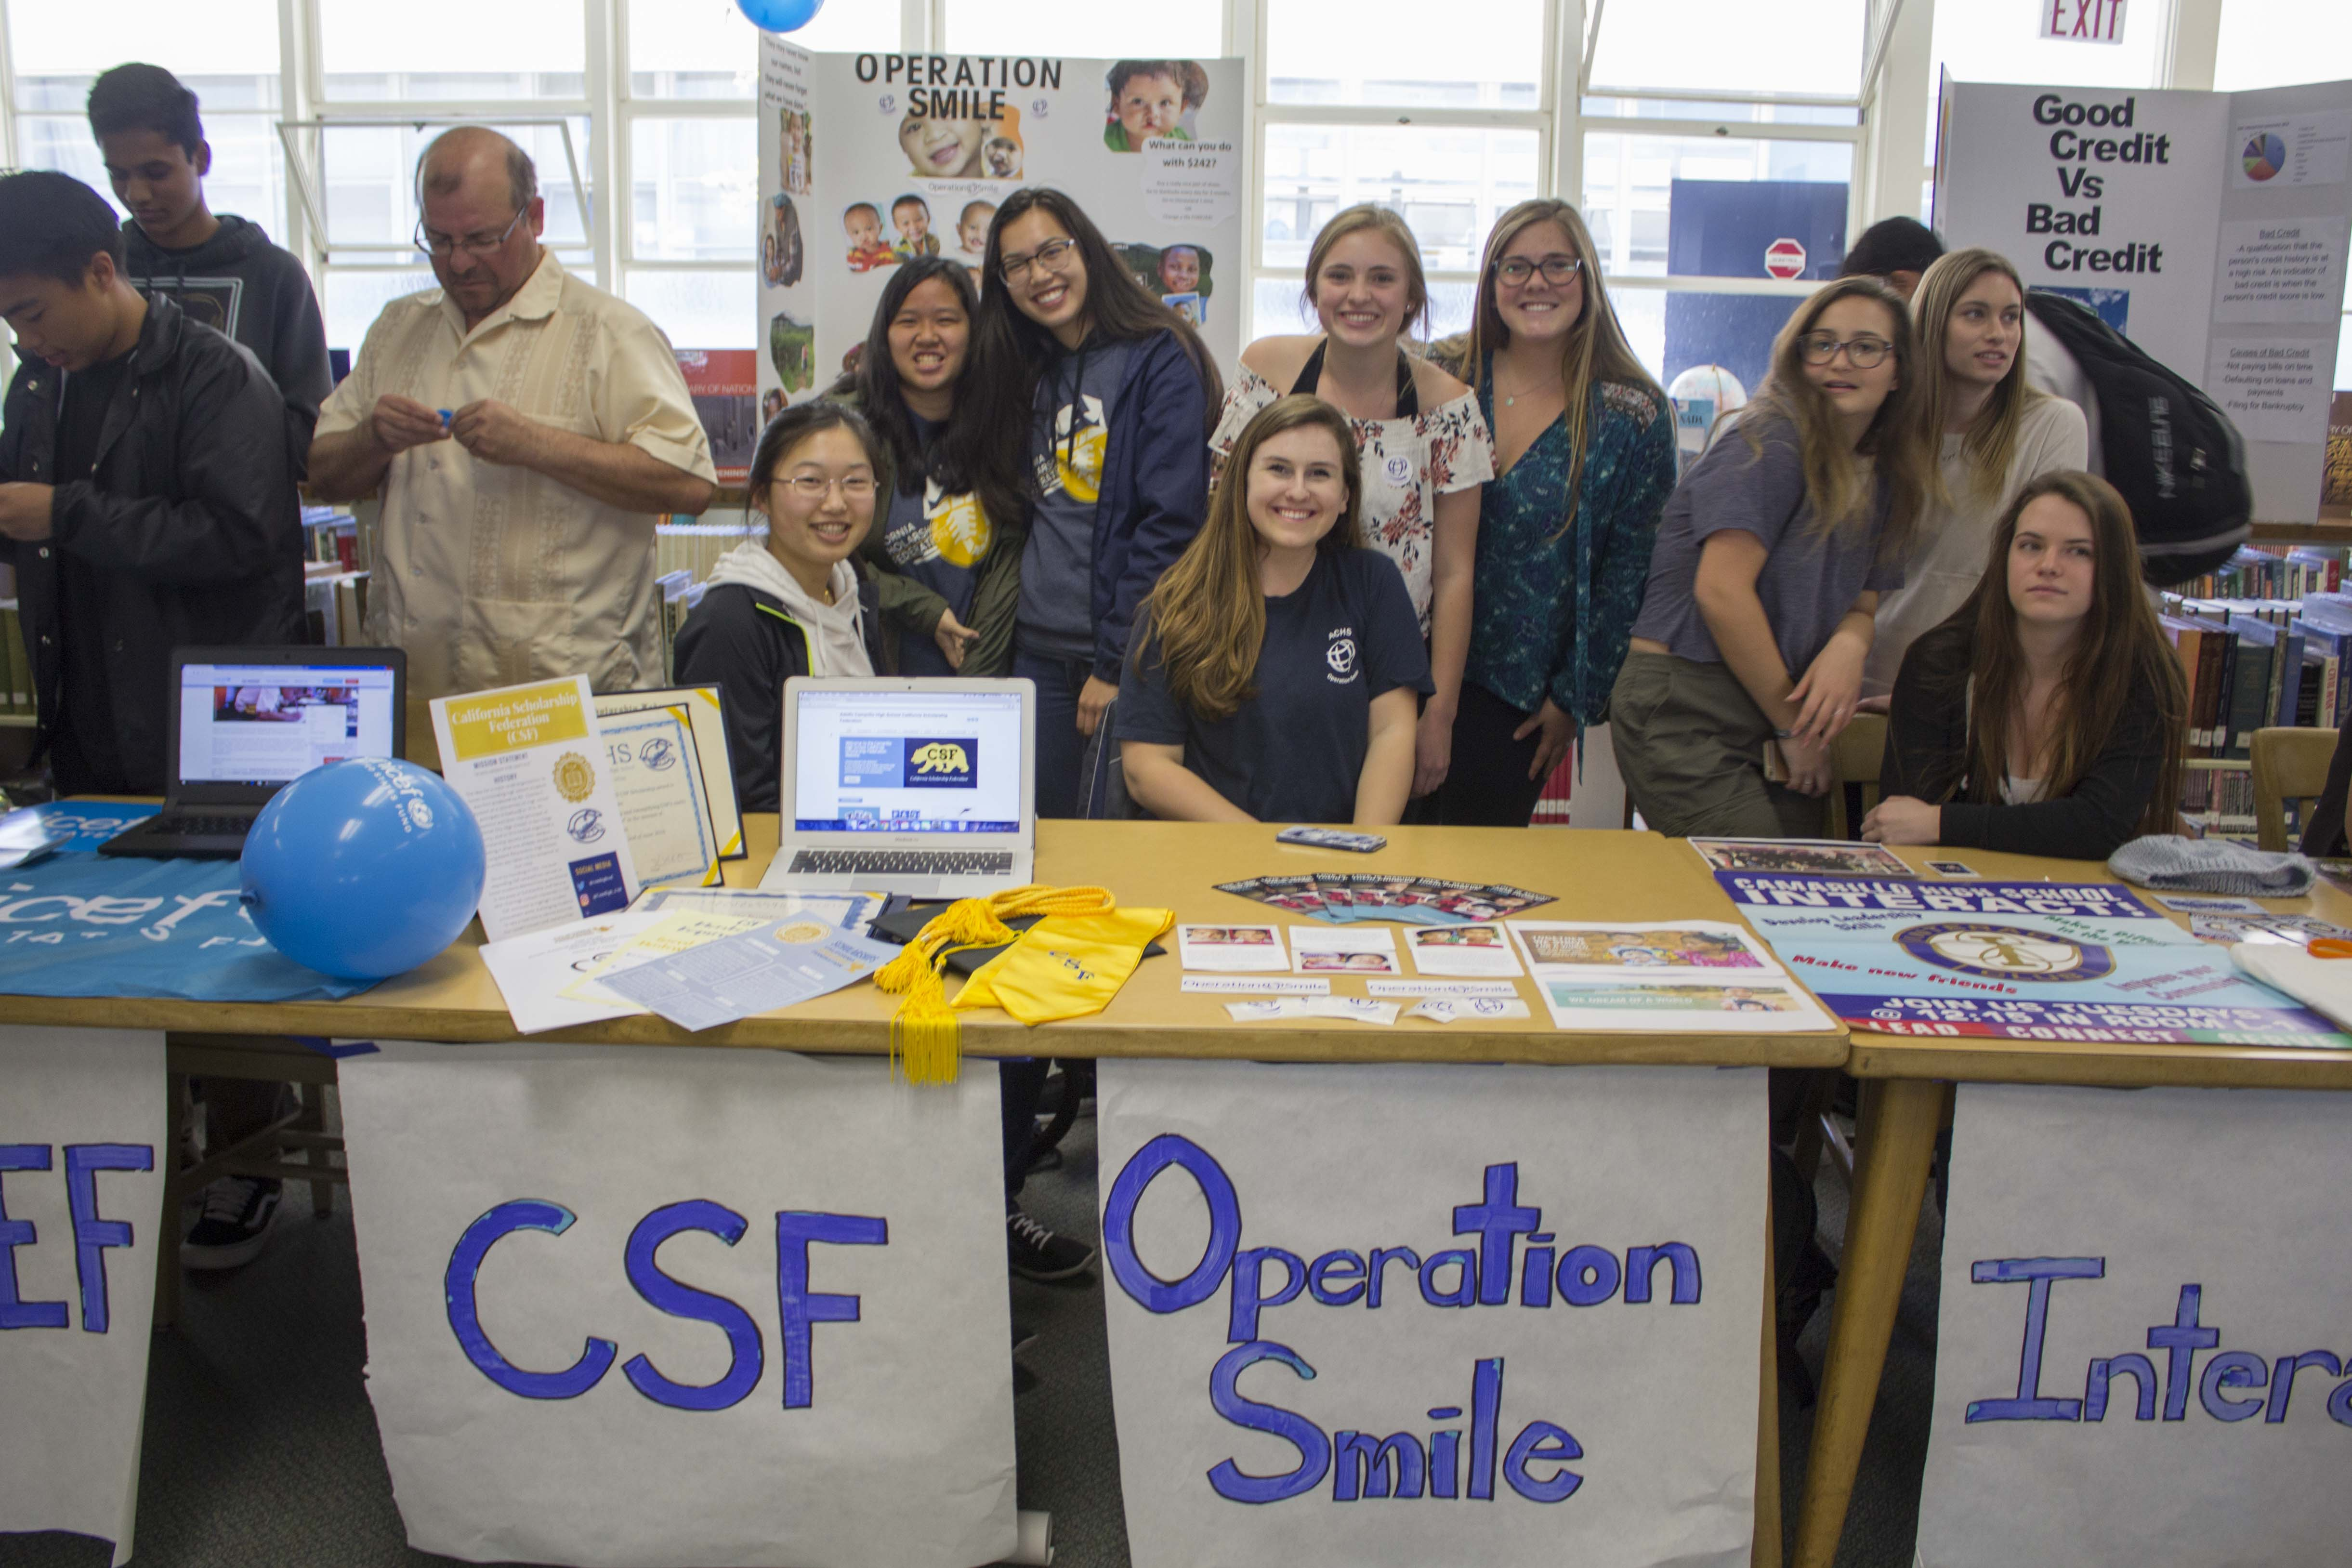 Michelle Liu, senior, Kaylie Chen, and Jaqueline Le, juniors, from California Scholarship Federation and juniors Mallorie Mehrali, Abby Michalak, and Tori Dearden from Operation Smile.